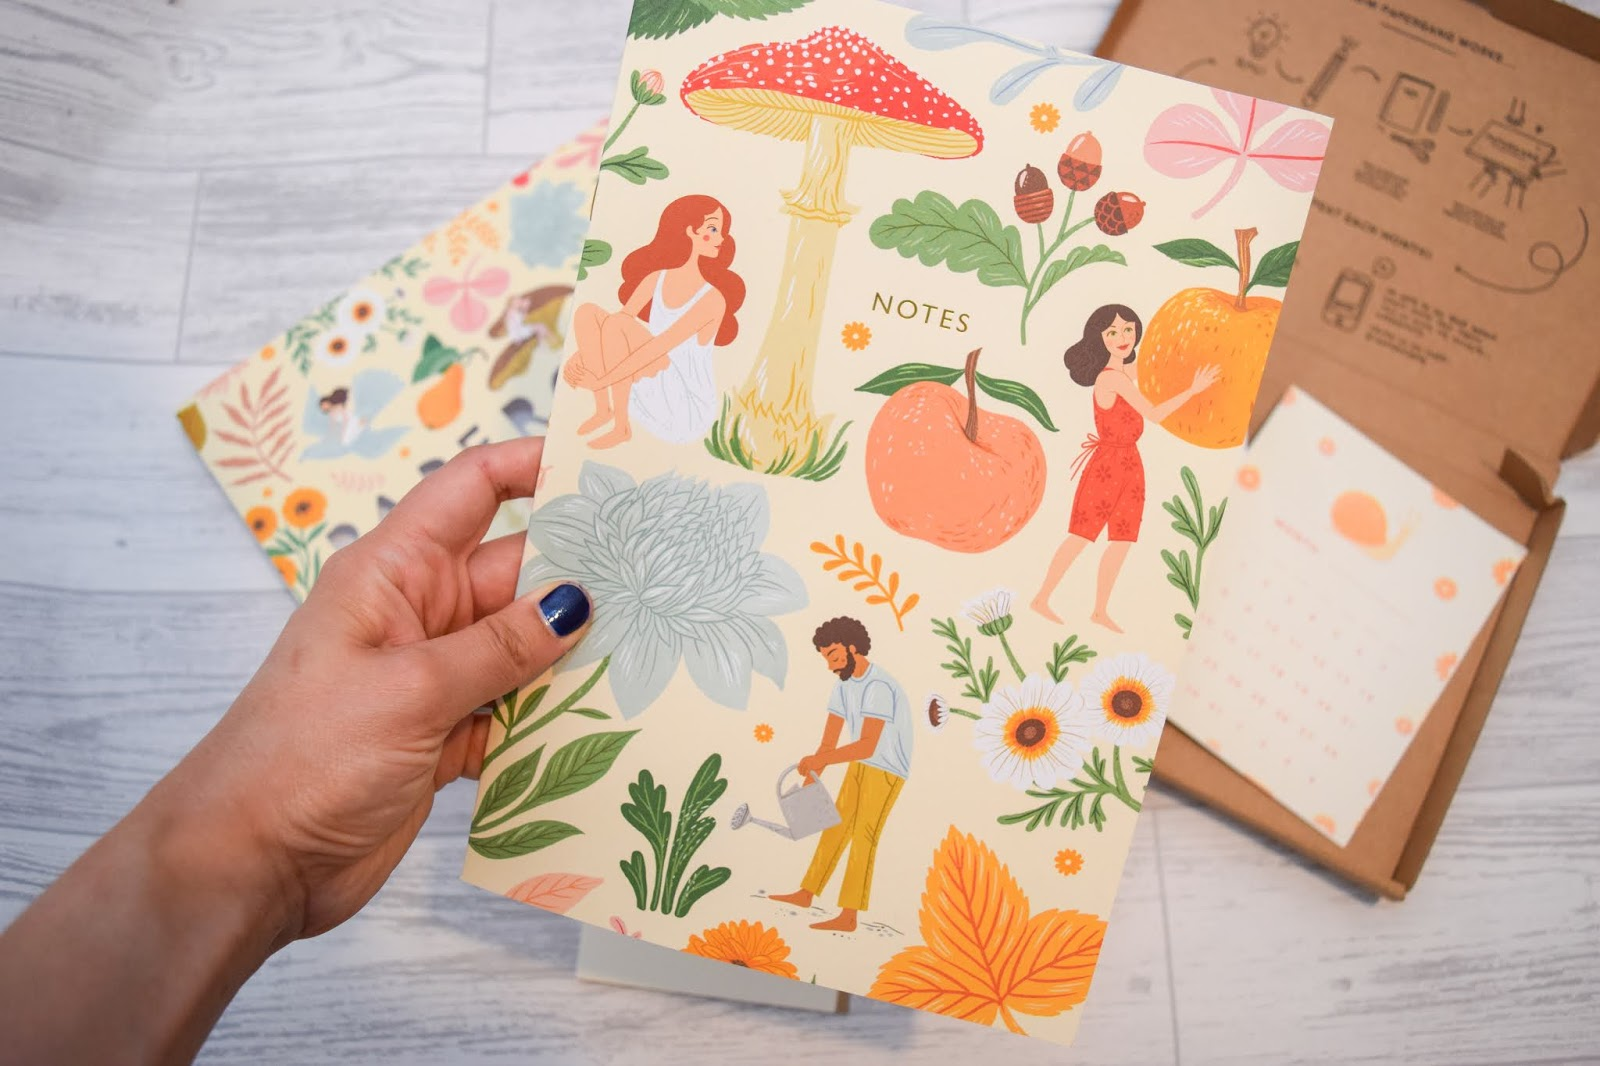 A hand holding an A4 notebook with a vegetable and wildflower design all over and illustrations of people gardening.